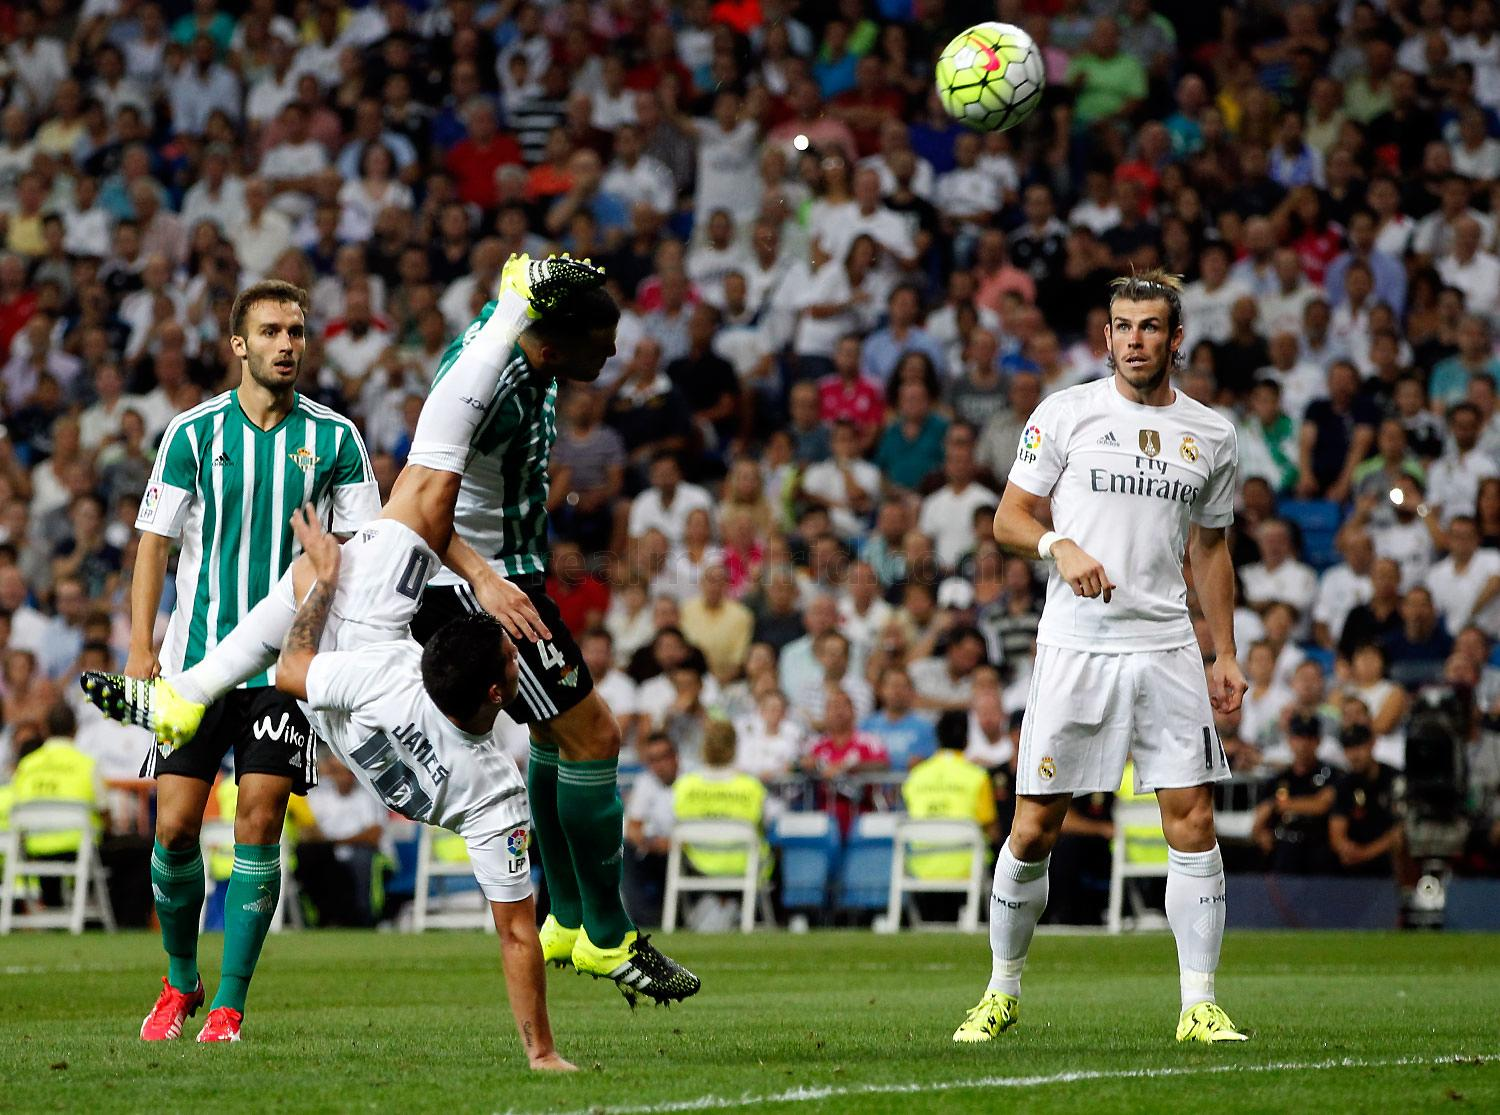 Real Madrid - Real Madrid - Real Betis - 30-08-2015